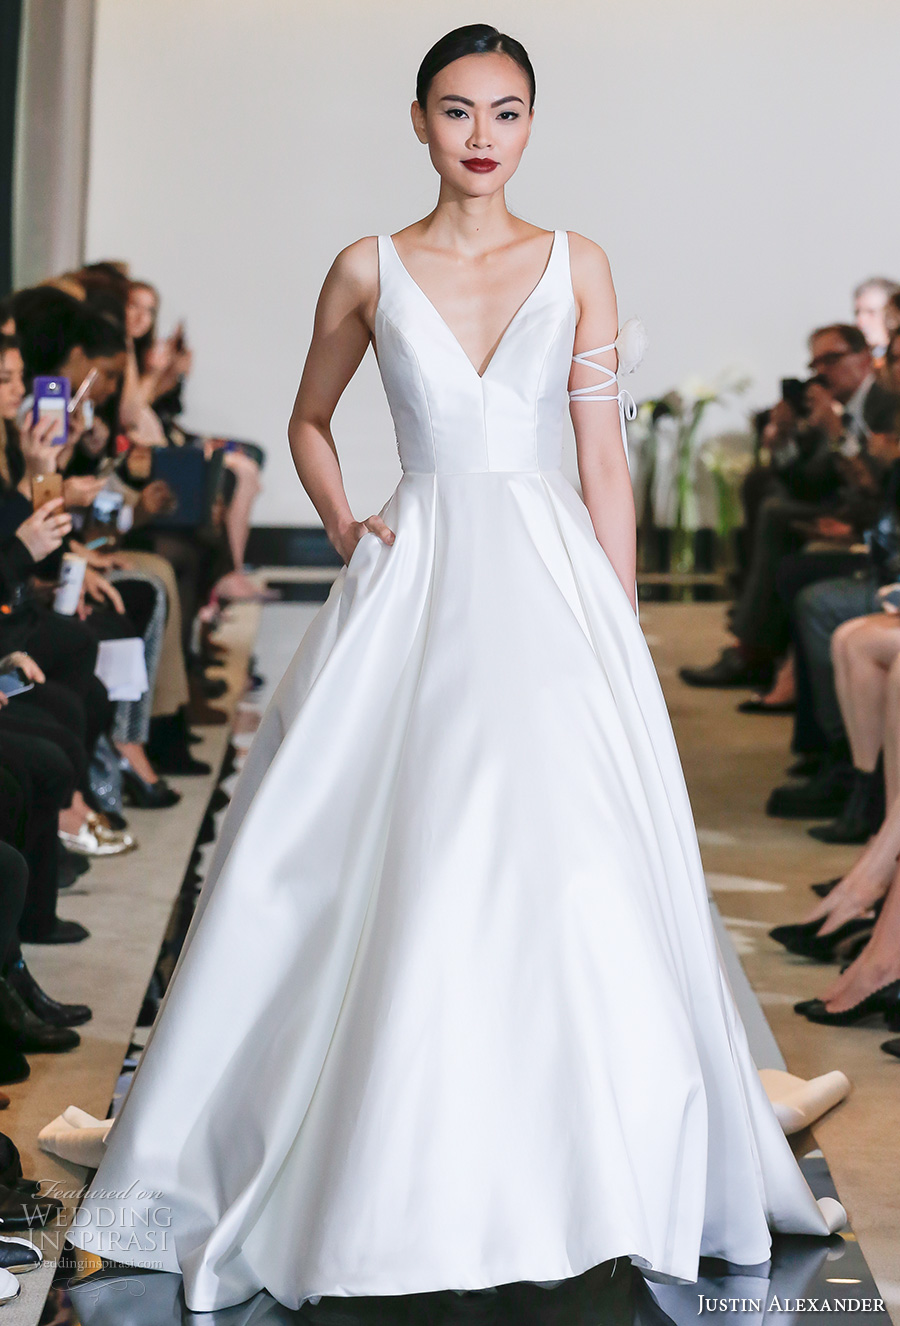 justin alexander spring 2018 bridal sleeveless v neck simple clean elegant elegant satin a  line wedding dress pockets chapel train (04) mv